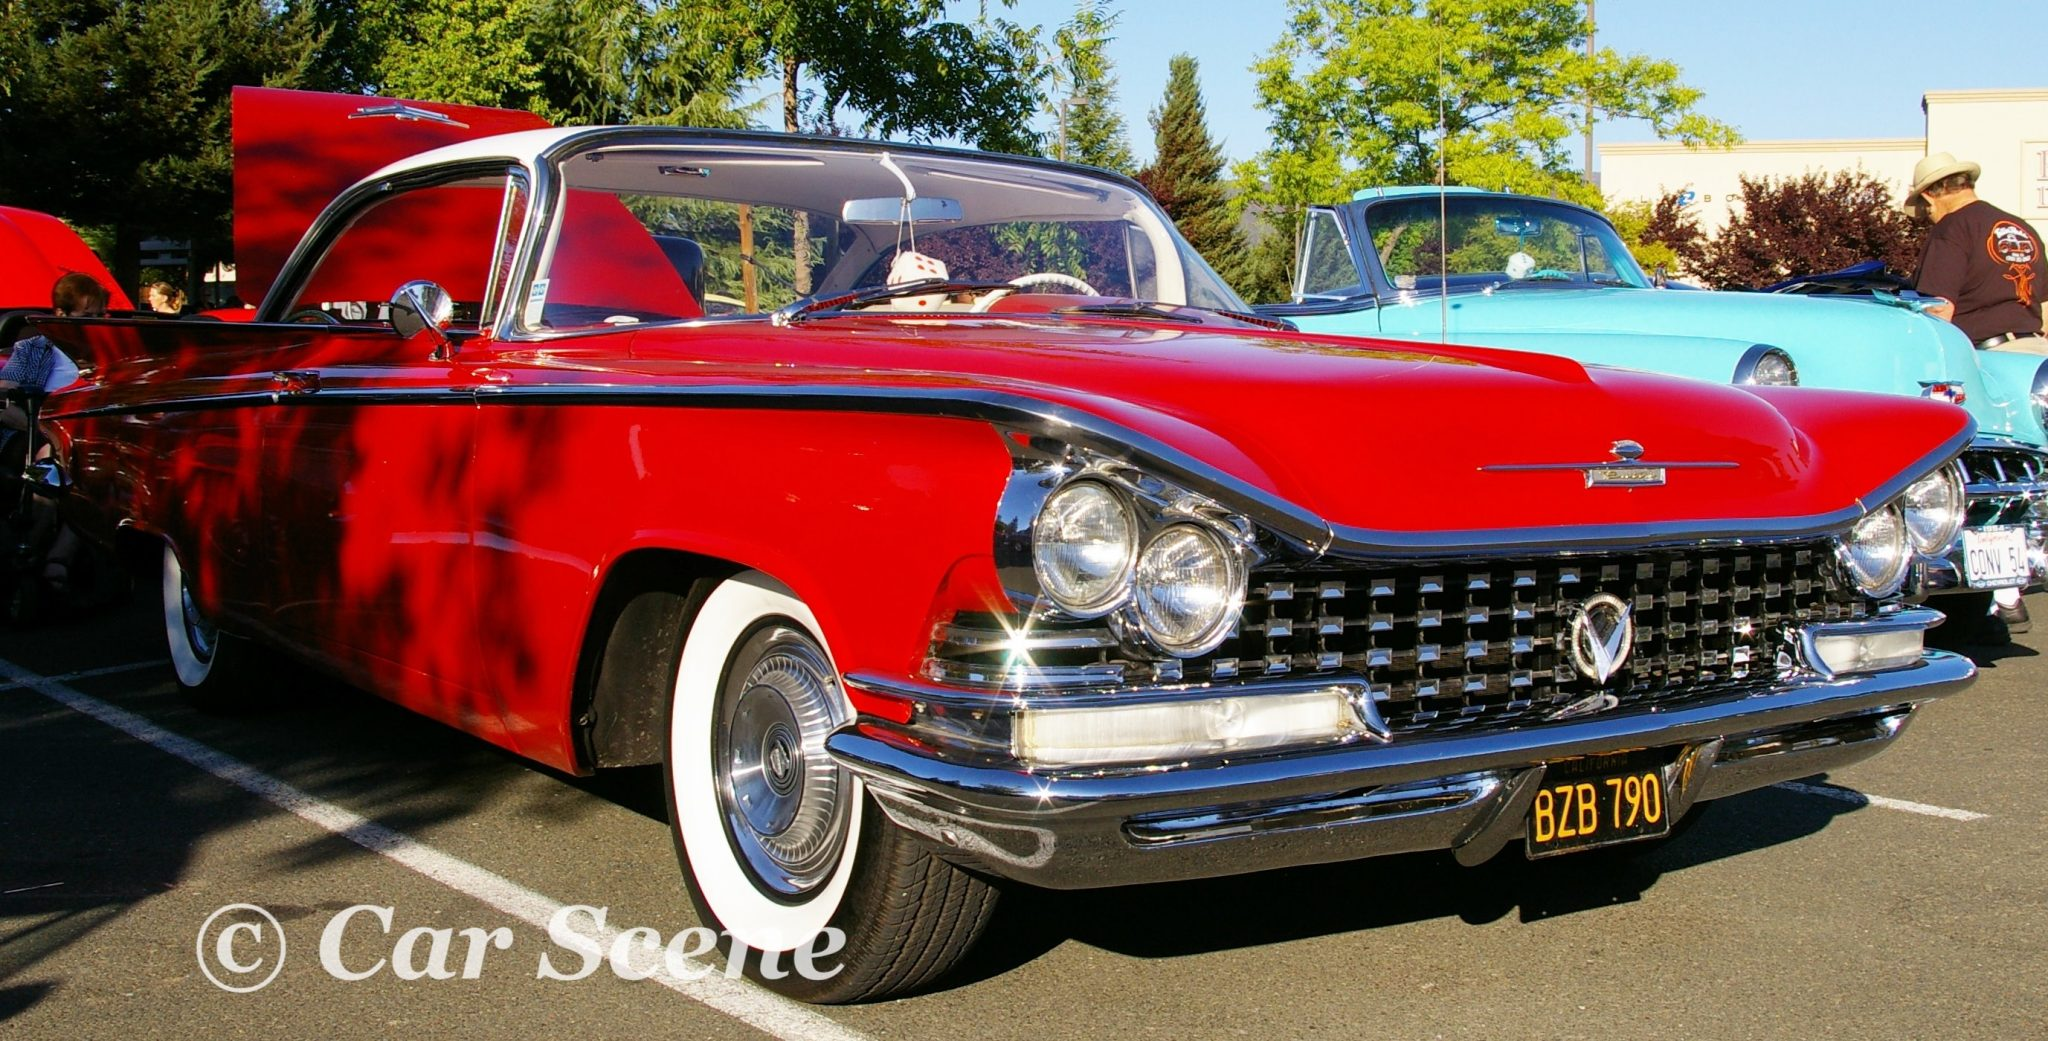 1959 Buick Invicta Hardtop front three quarters view